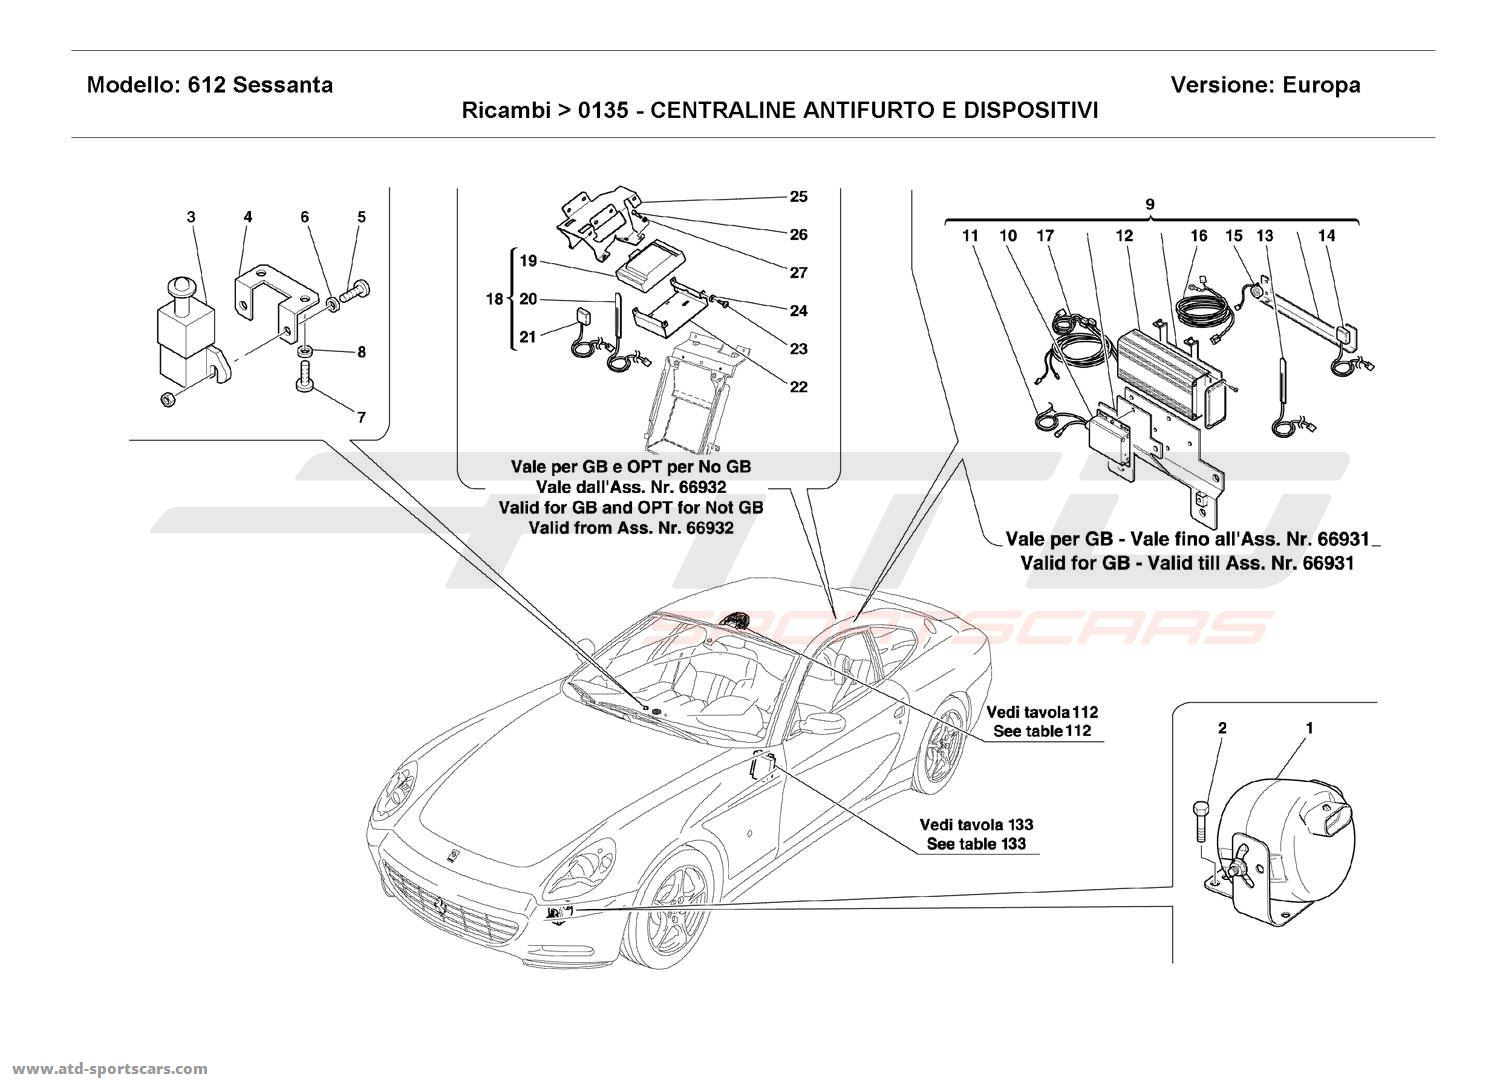 Ferrari 612 Sessanta ANTI-THEFT ELECTRICAL BOARDS AND DEVICES